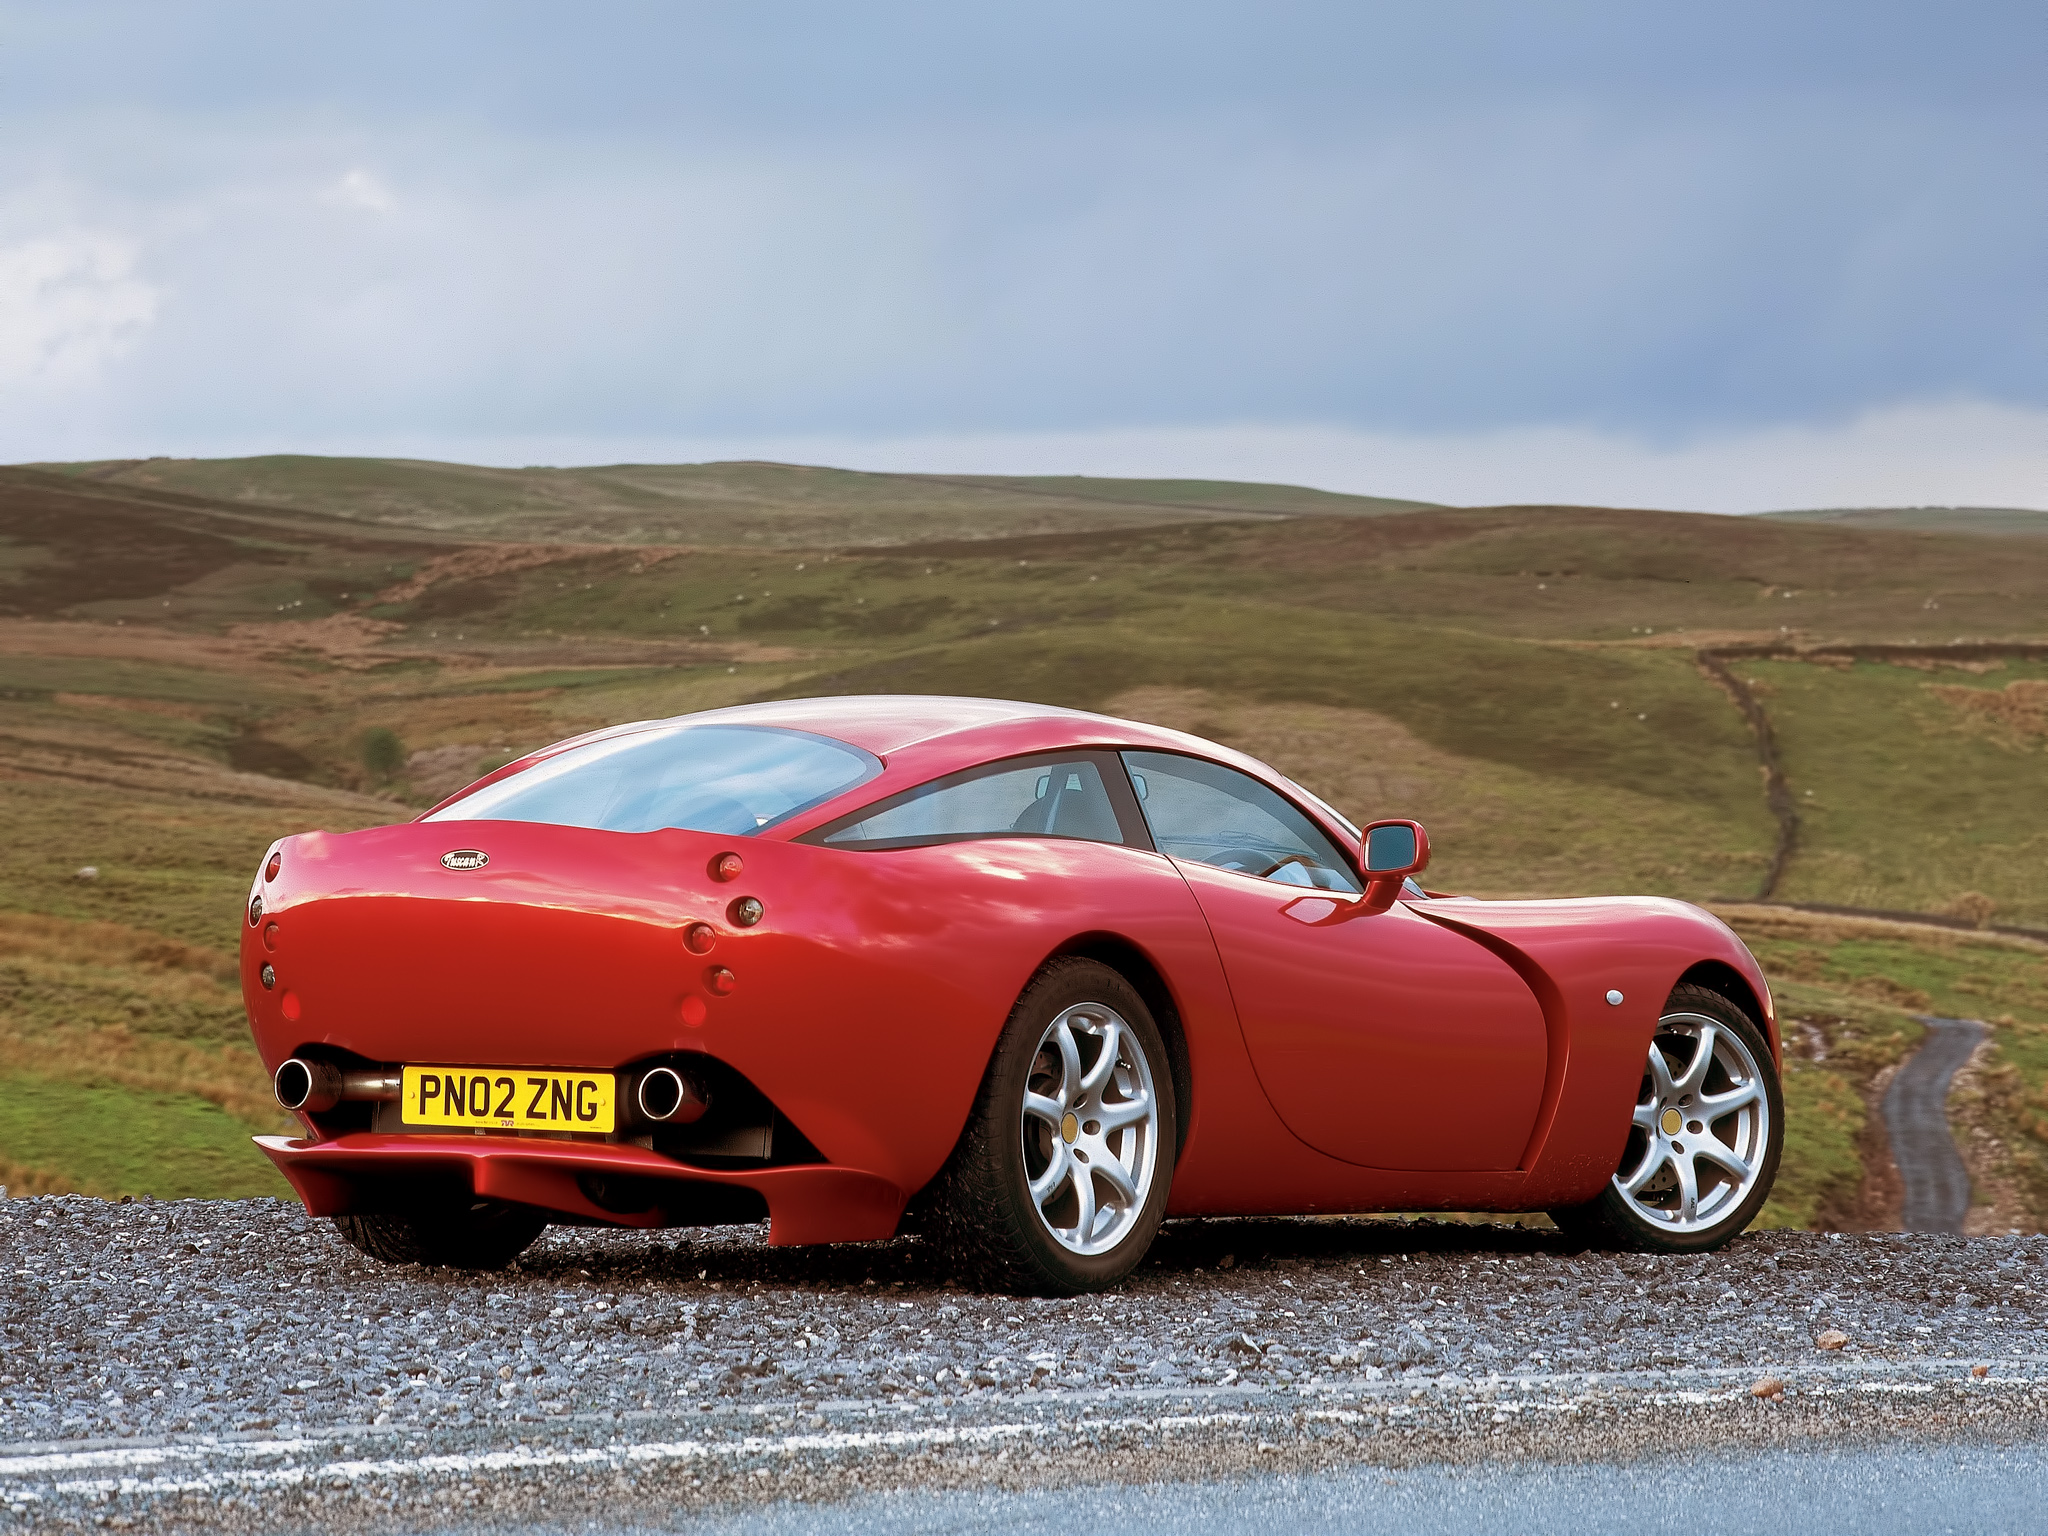 Tvr t440 photo - 4